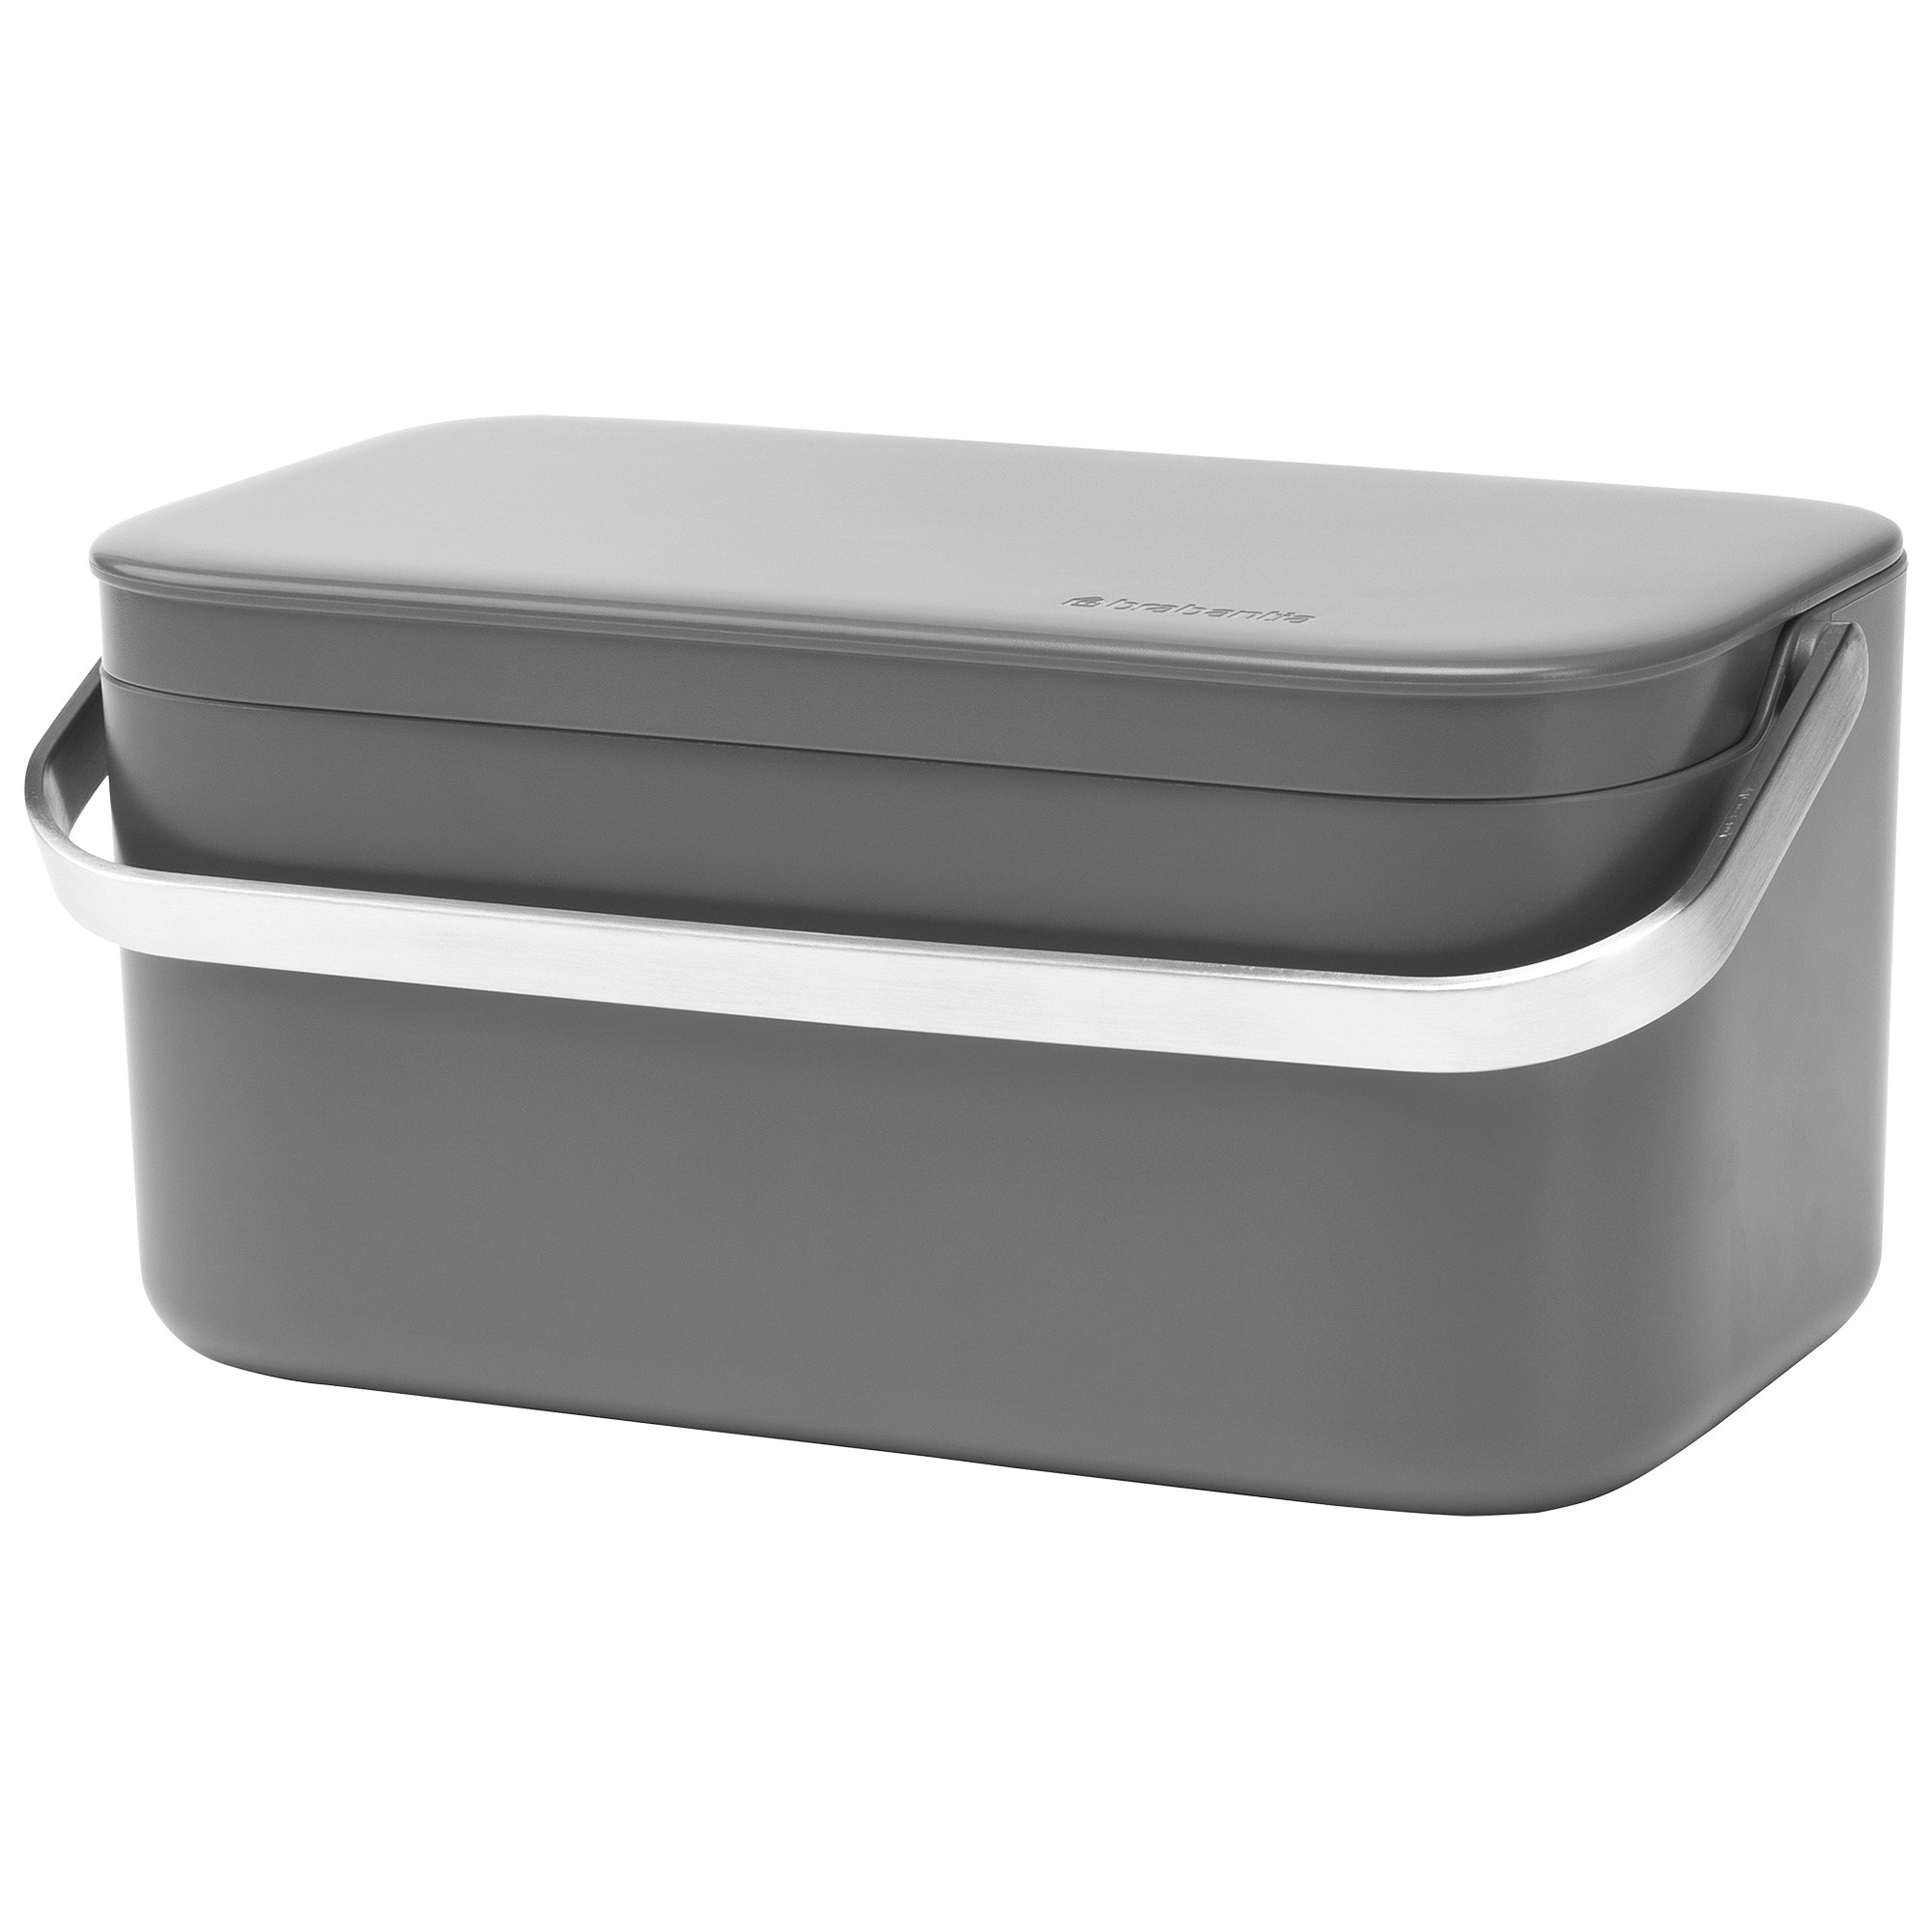 Brabantia Food Waste Caddy, Dark Grey